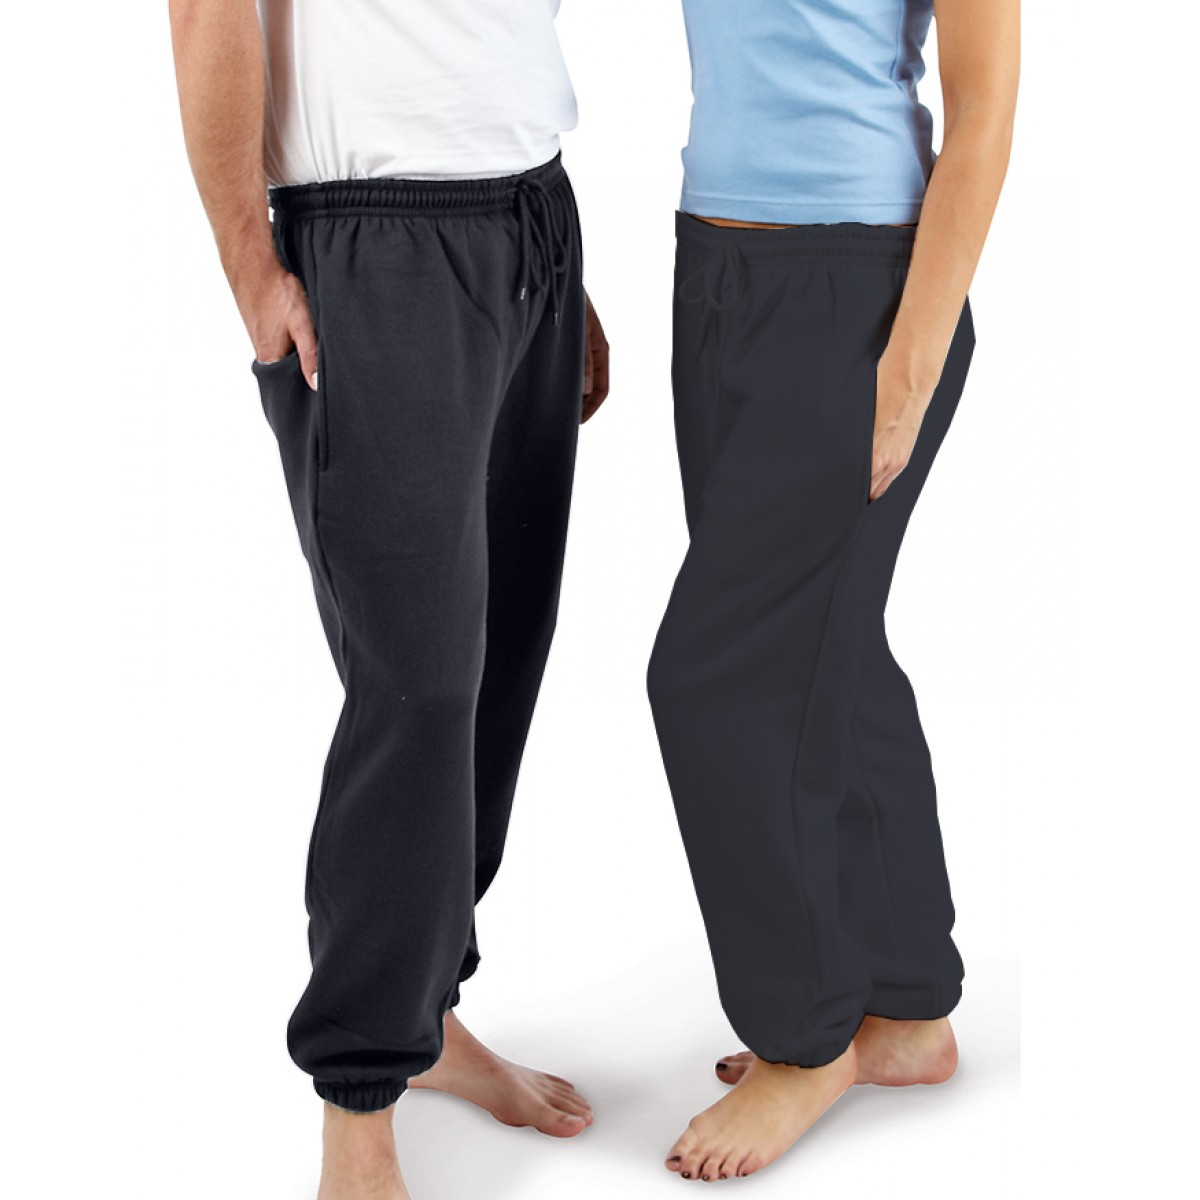 Ranks RK23 Deluxe Heavy Jog Pants